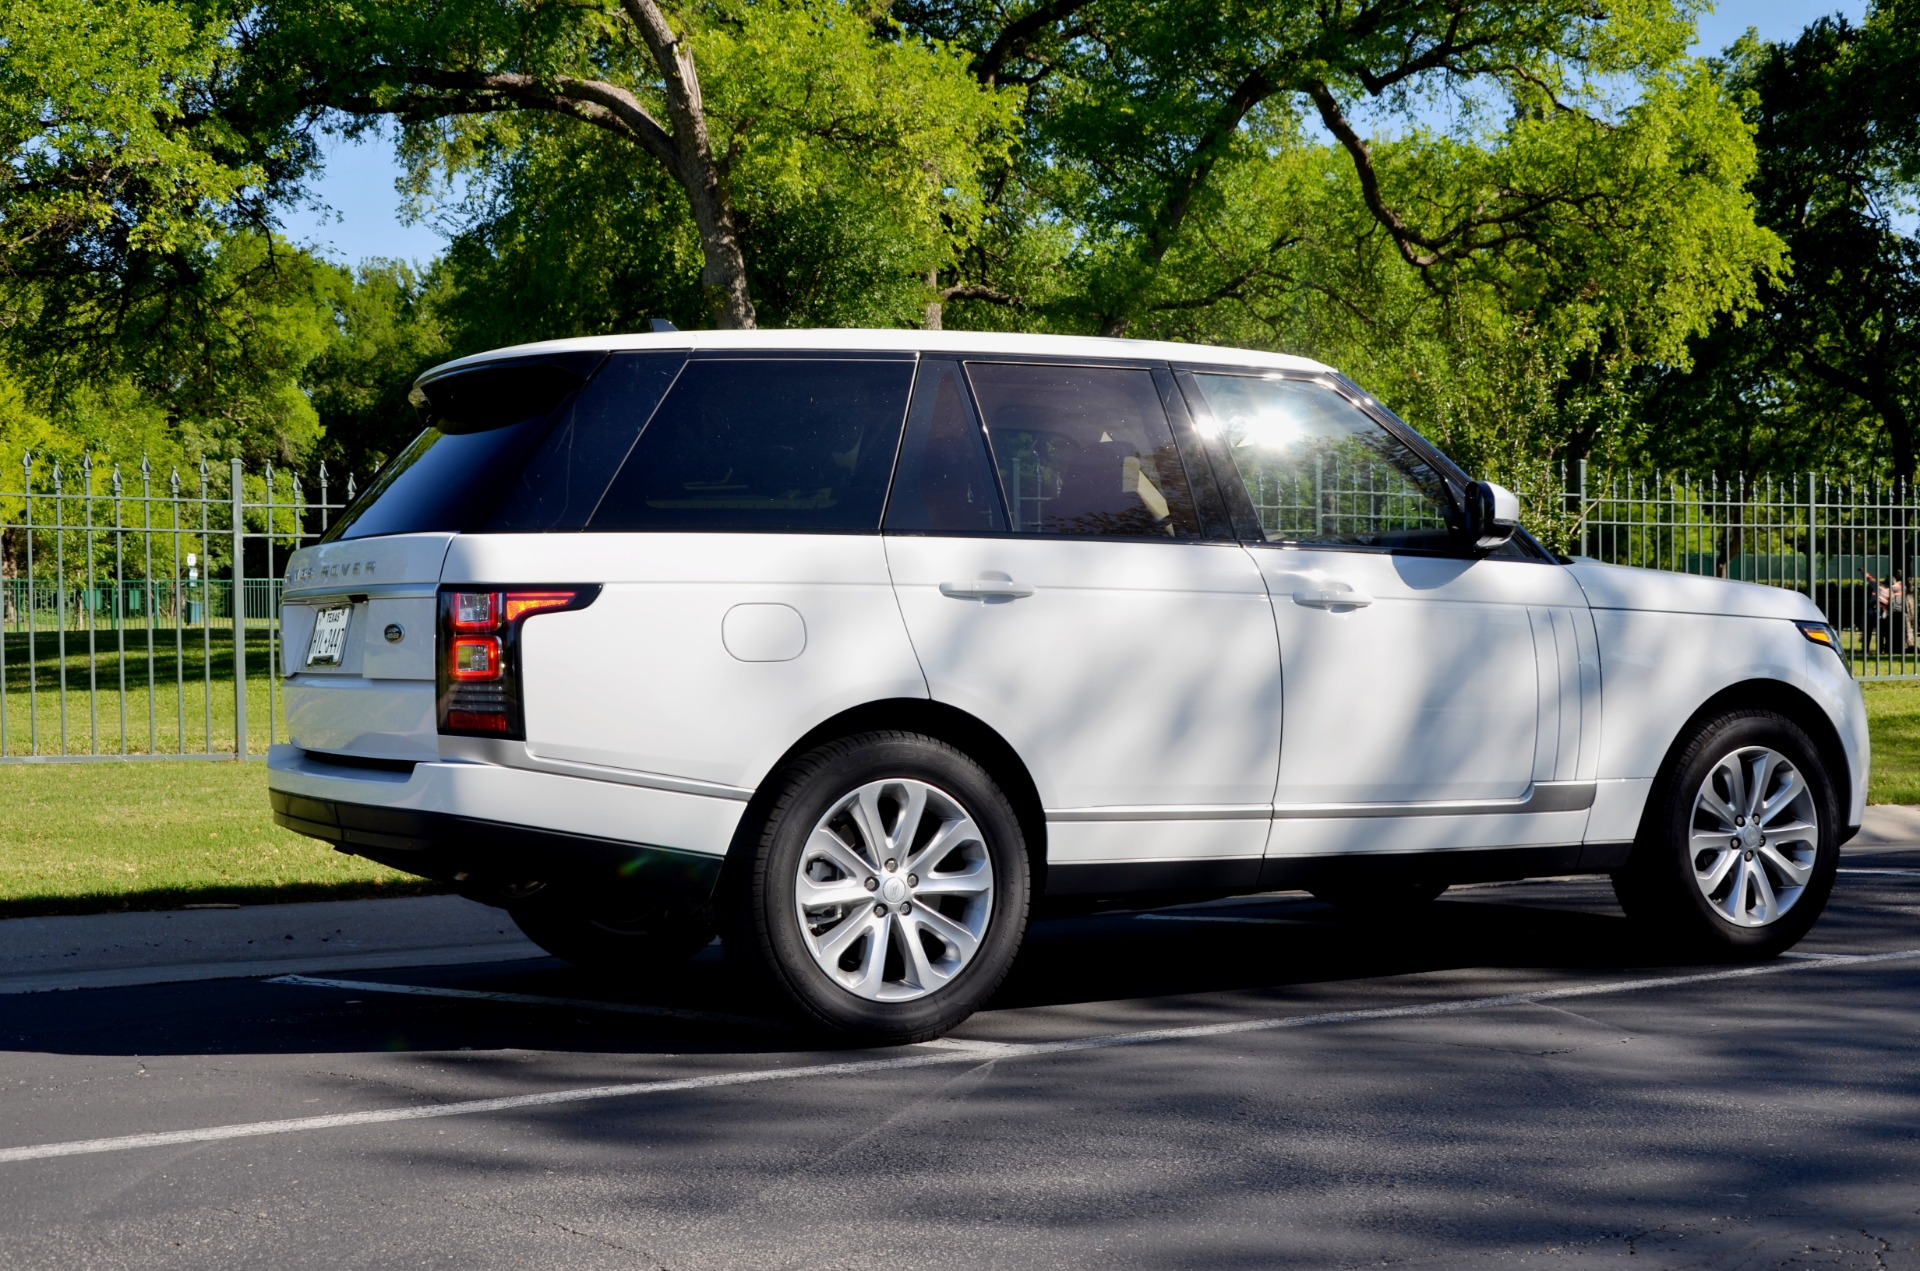 2016 land rover range rover hse stock rr2016 for sale near dallas tx tx land rover dealer. Black Bedroom Furniture Sets. Home Design Ideas